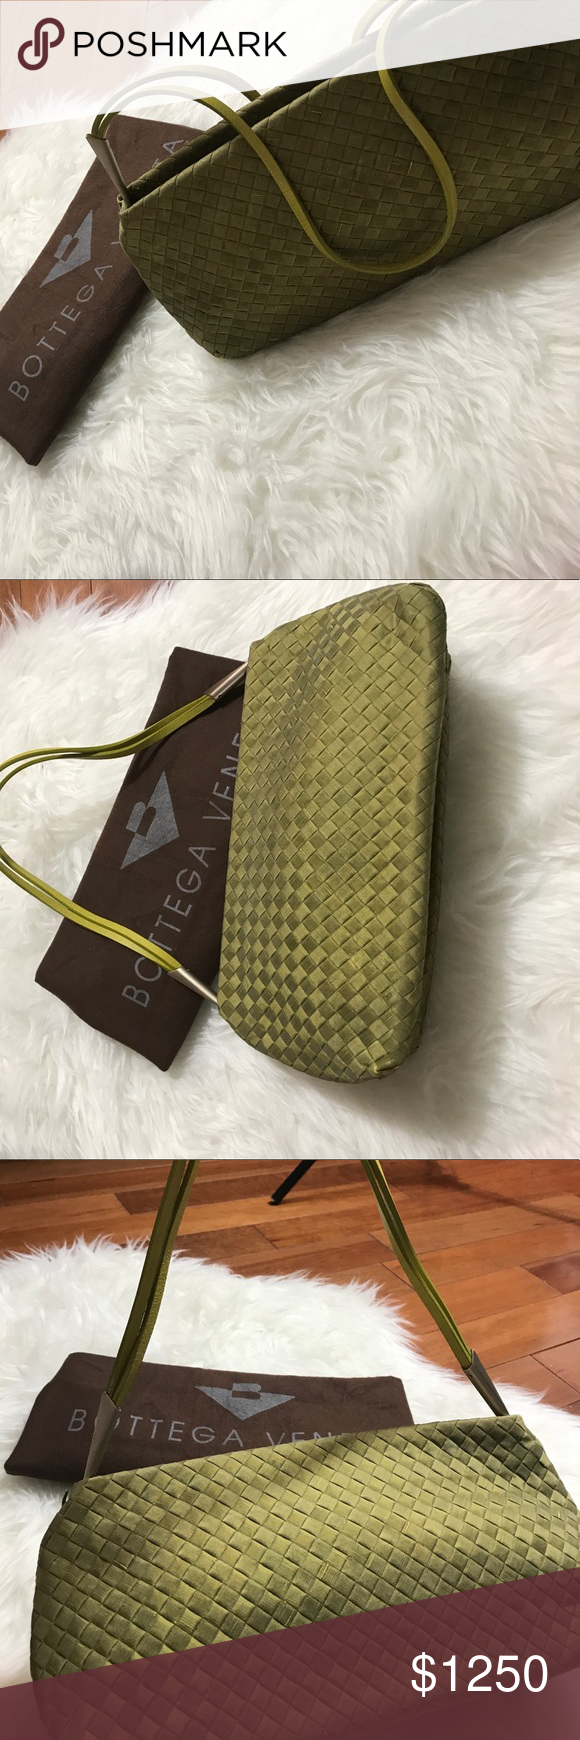 Bottega Veneta Purse Beautiful green authentic 100% real Bottega Veneta made in Italy purse. I used this maybe once. Looks brand new. Inside is brand new. I bought this the day it came out in one of their collections. I paid full retail price at the Bal Harbor shops in Miami FL.🌞Questions? Ask! Best offer. Bottega Veneta Bags Shoulder Bags